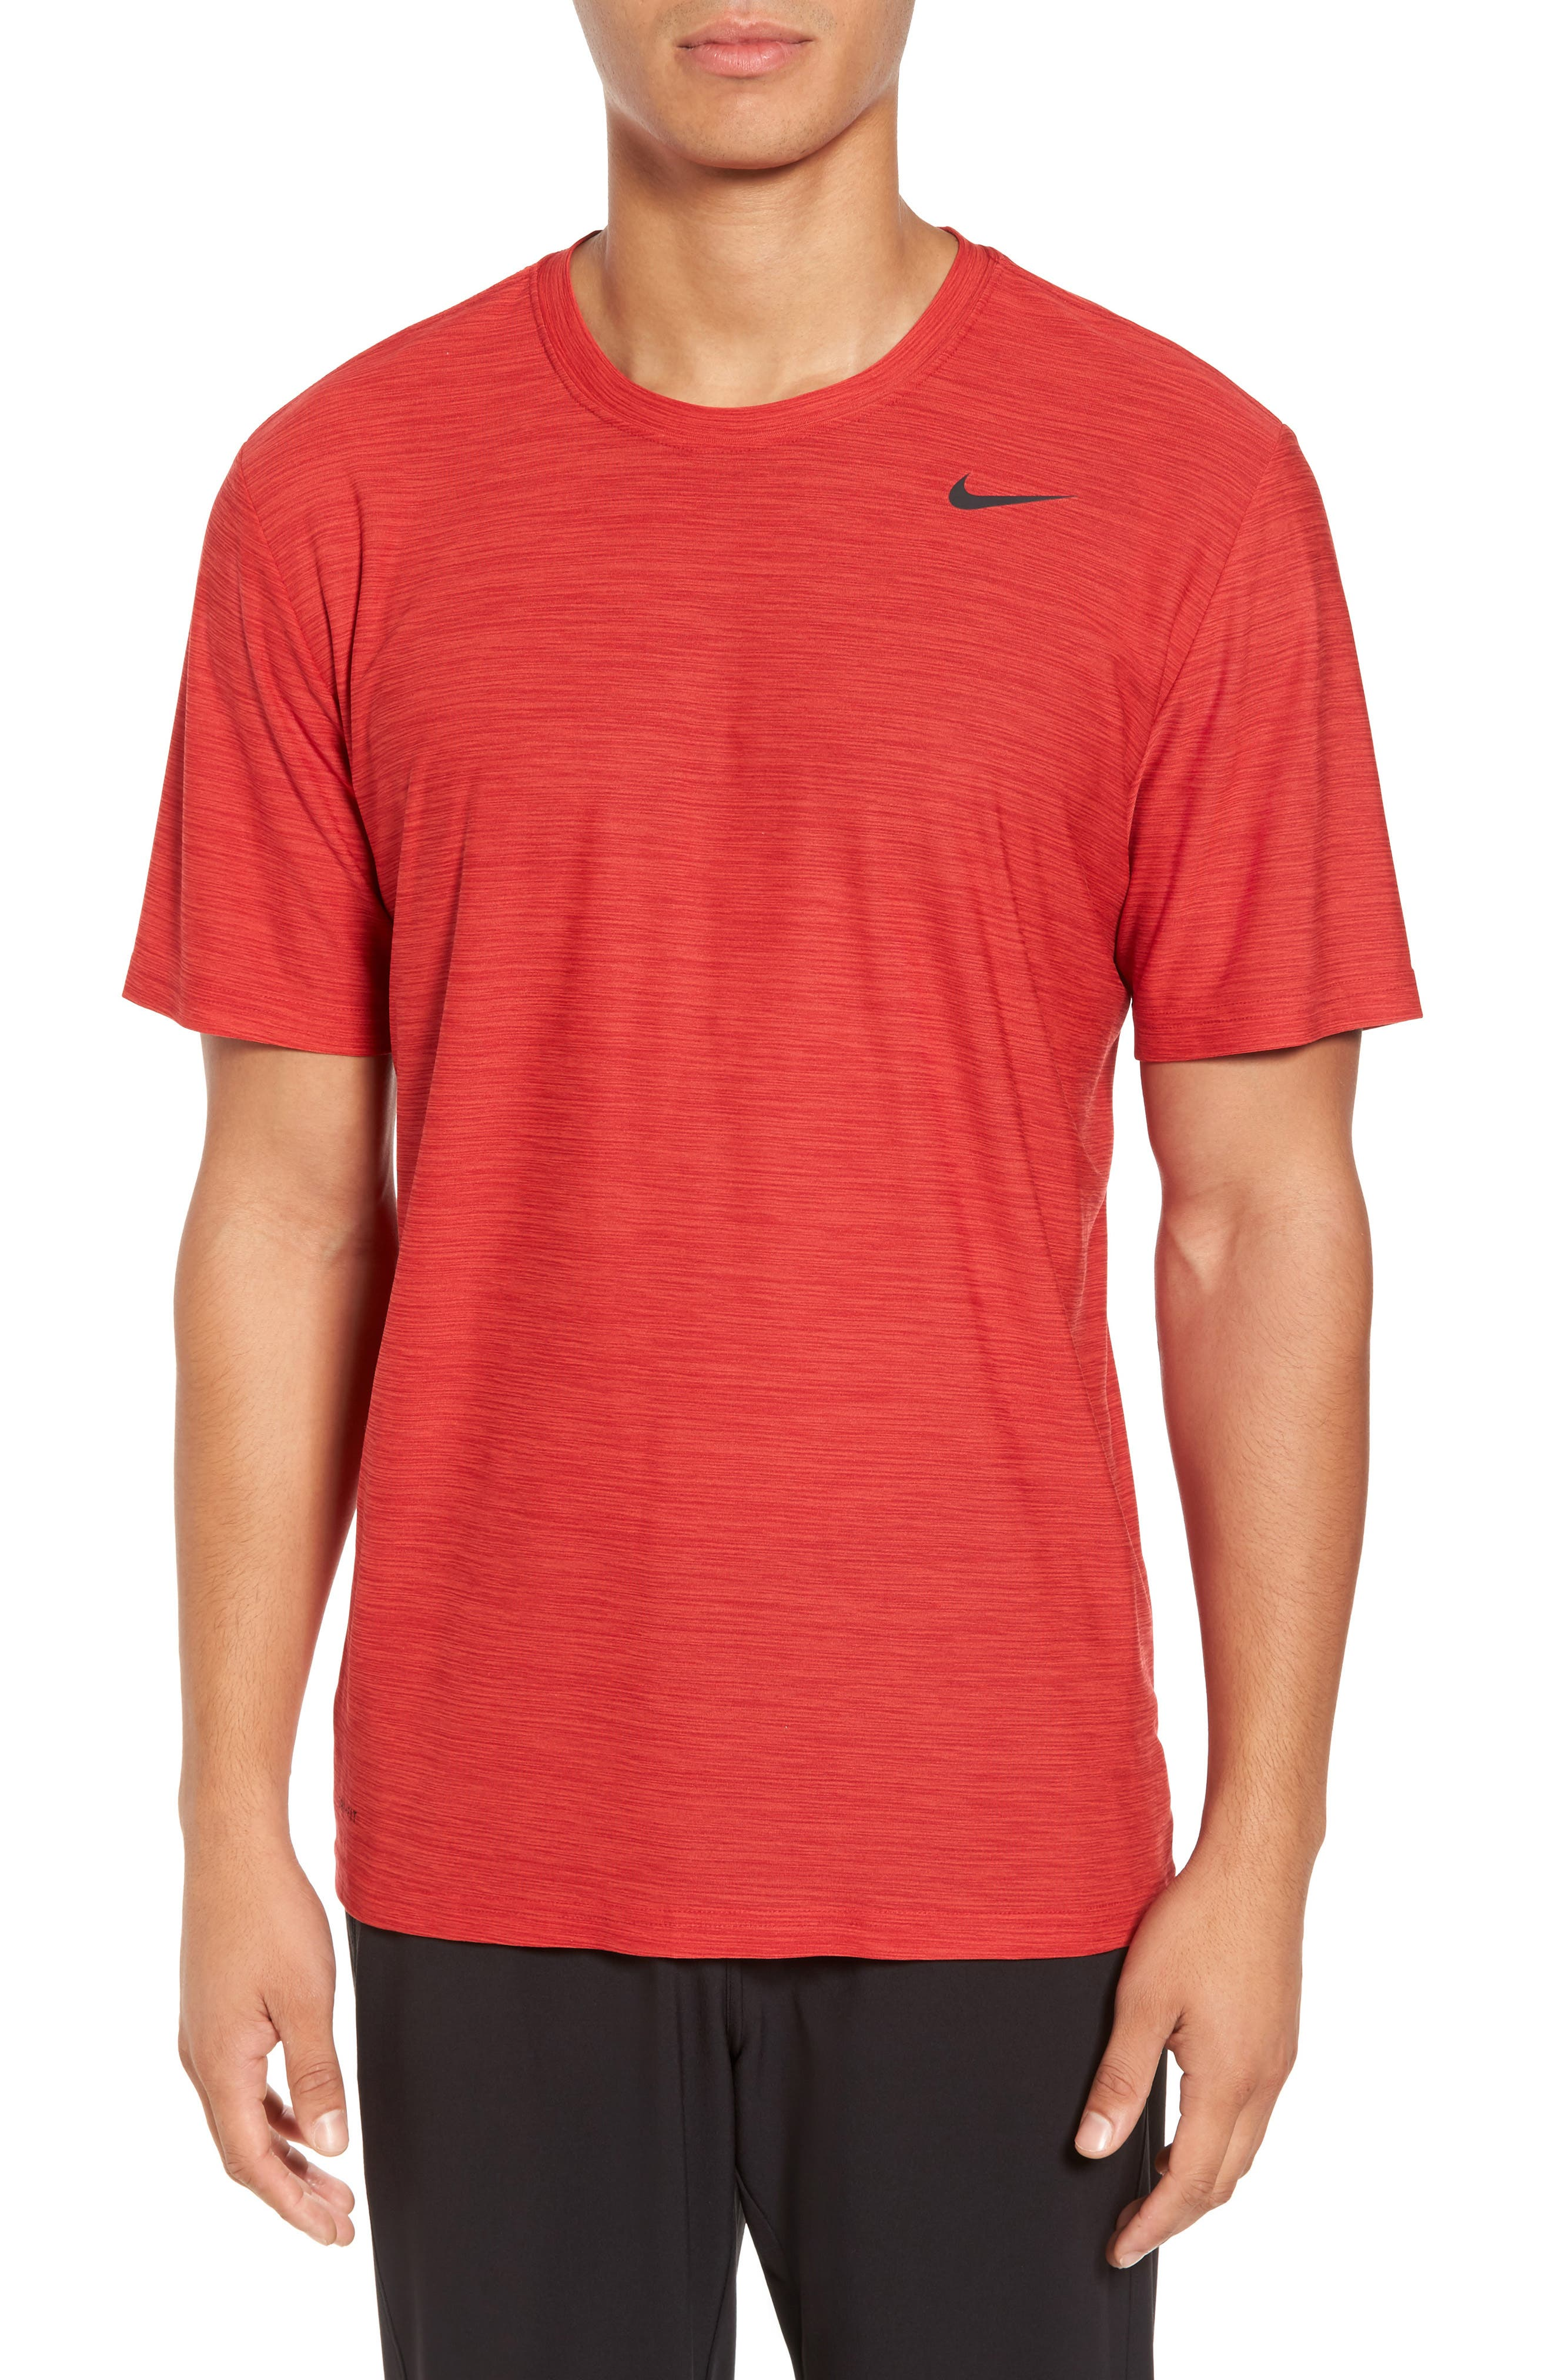 Dry Medalist Running Top,                         Main,                         color, Deep Burgundy/ Habanero Red